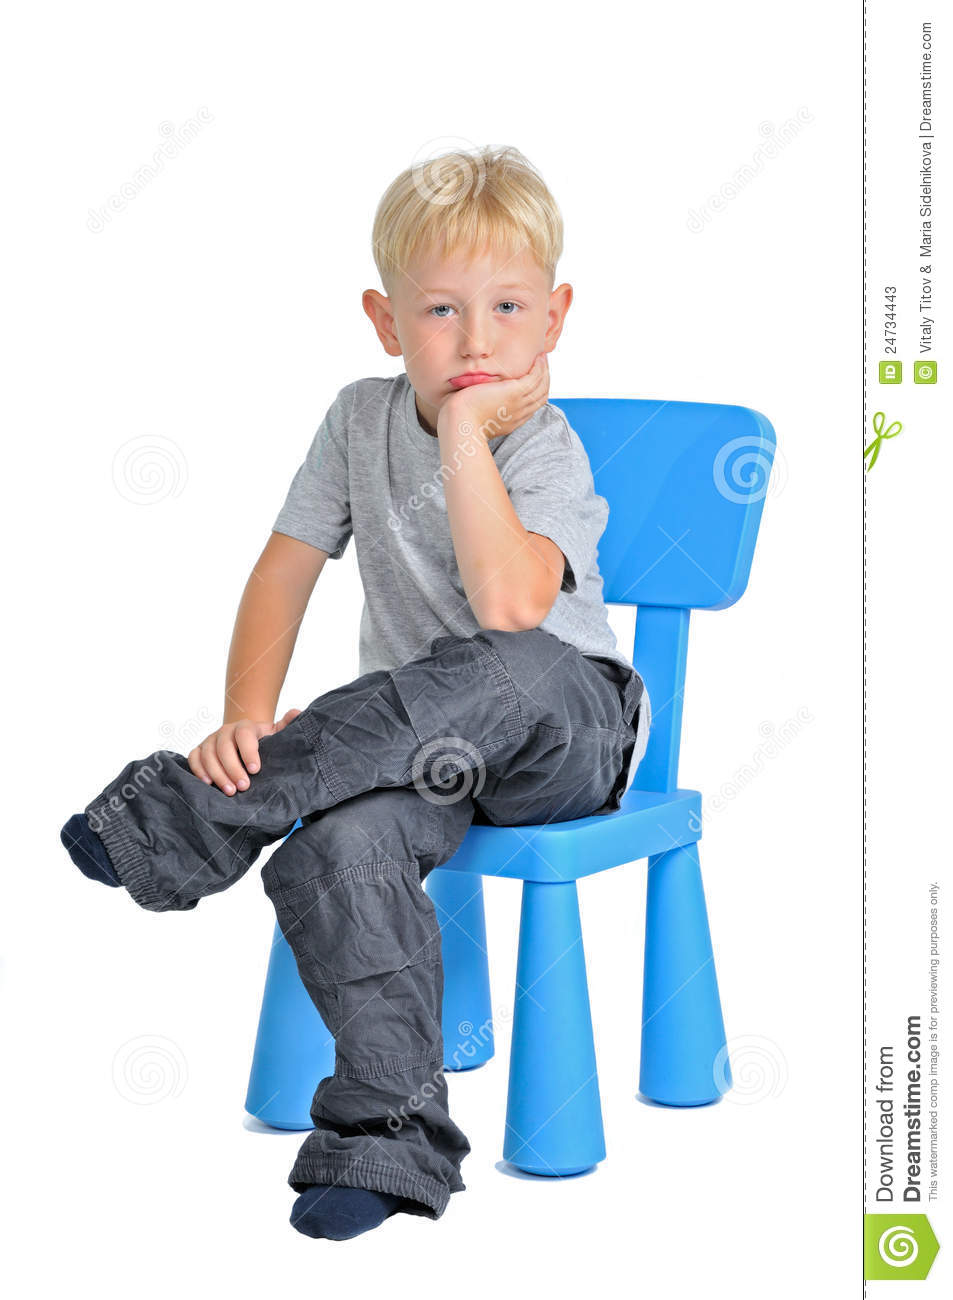 Sad boy sitting on a chair stock image Image of cutout